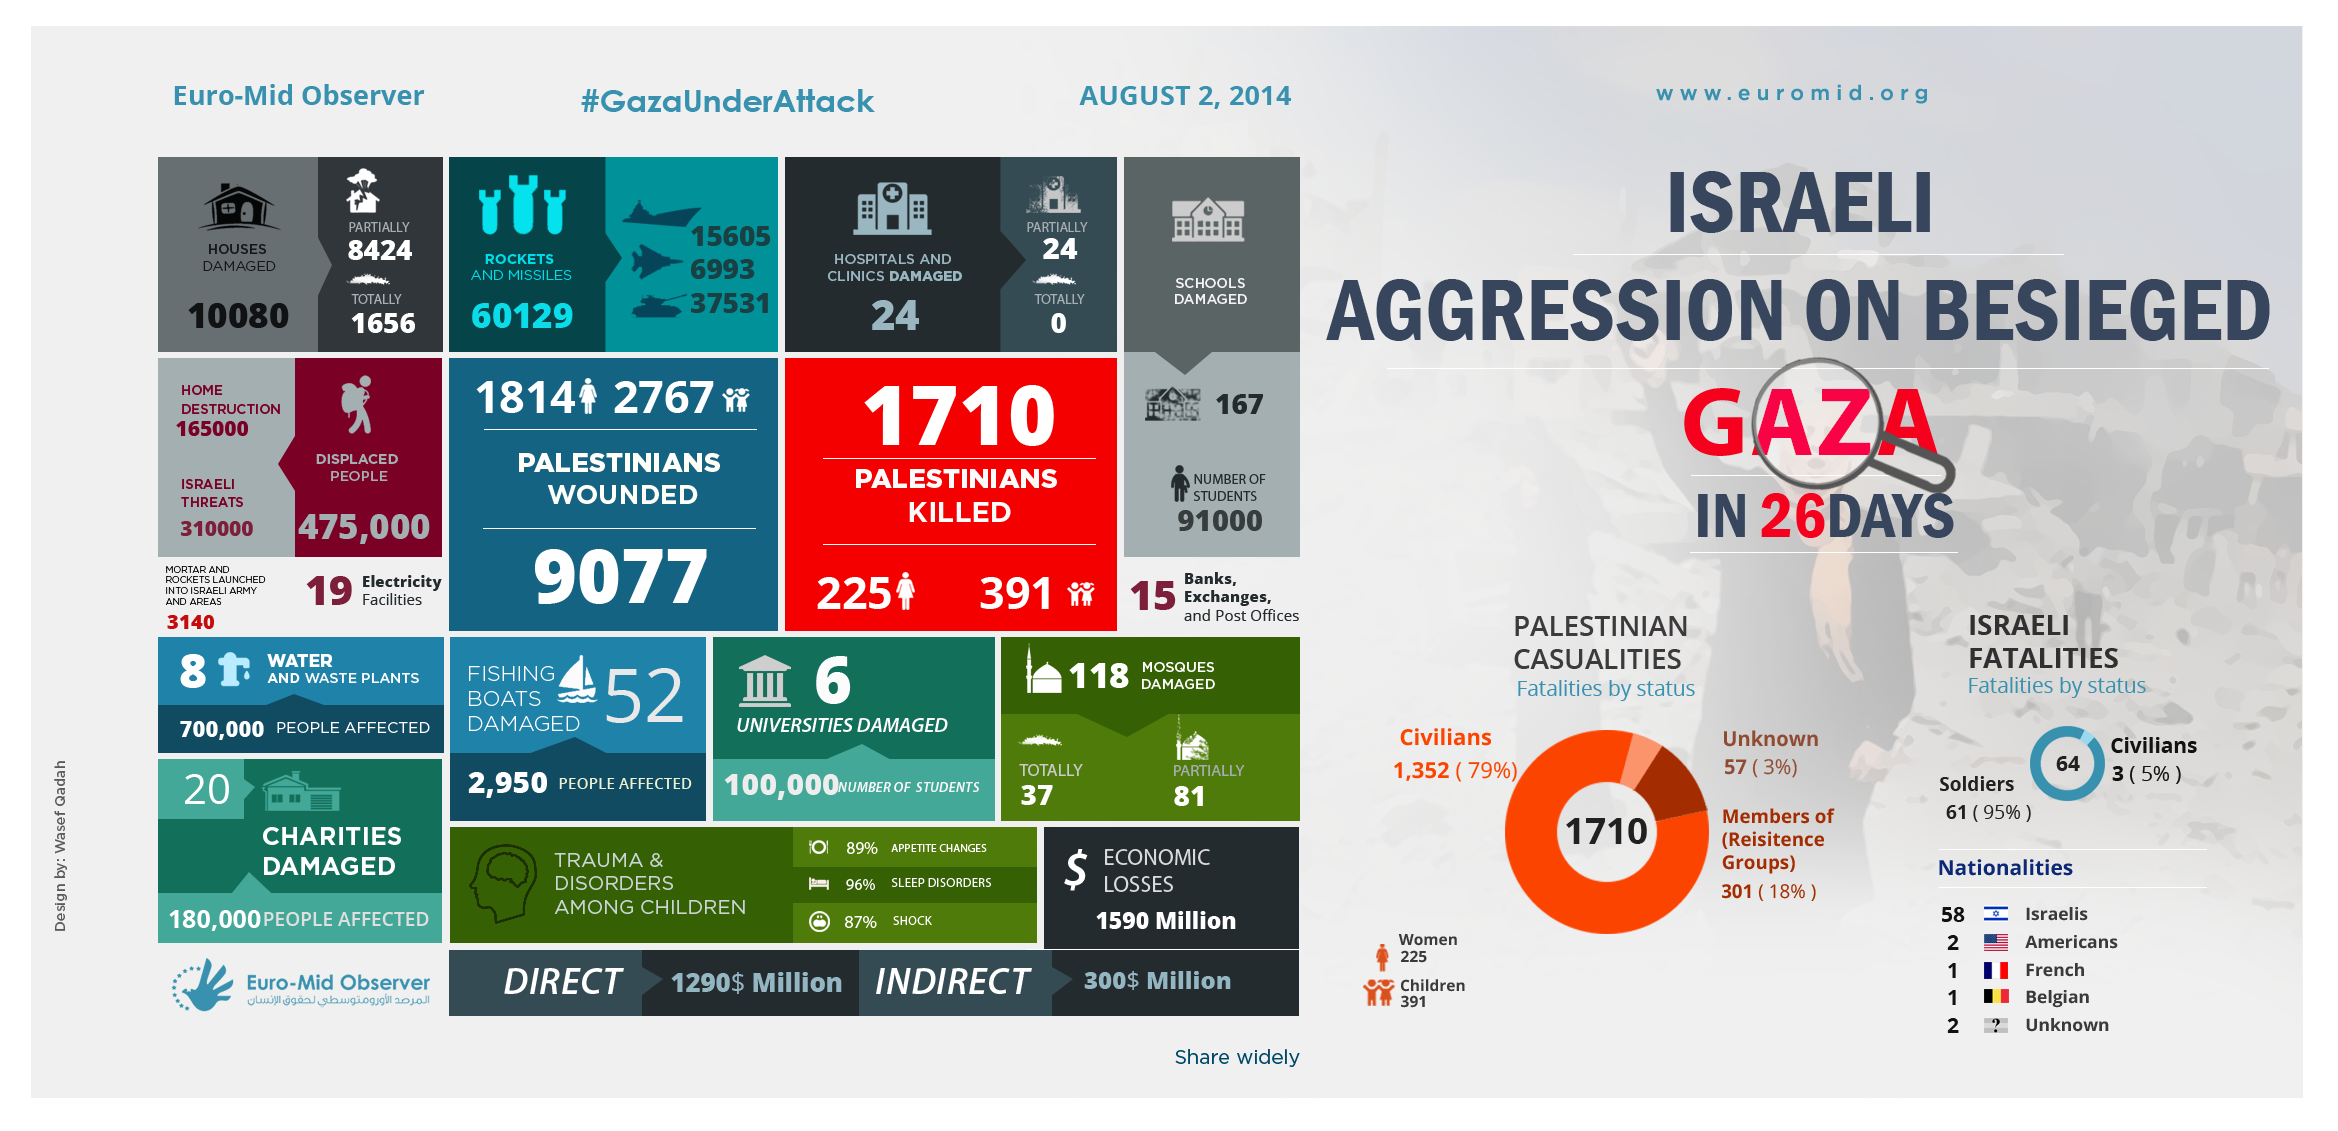 Israeli Aggression on besieged Gaza in 26 Days